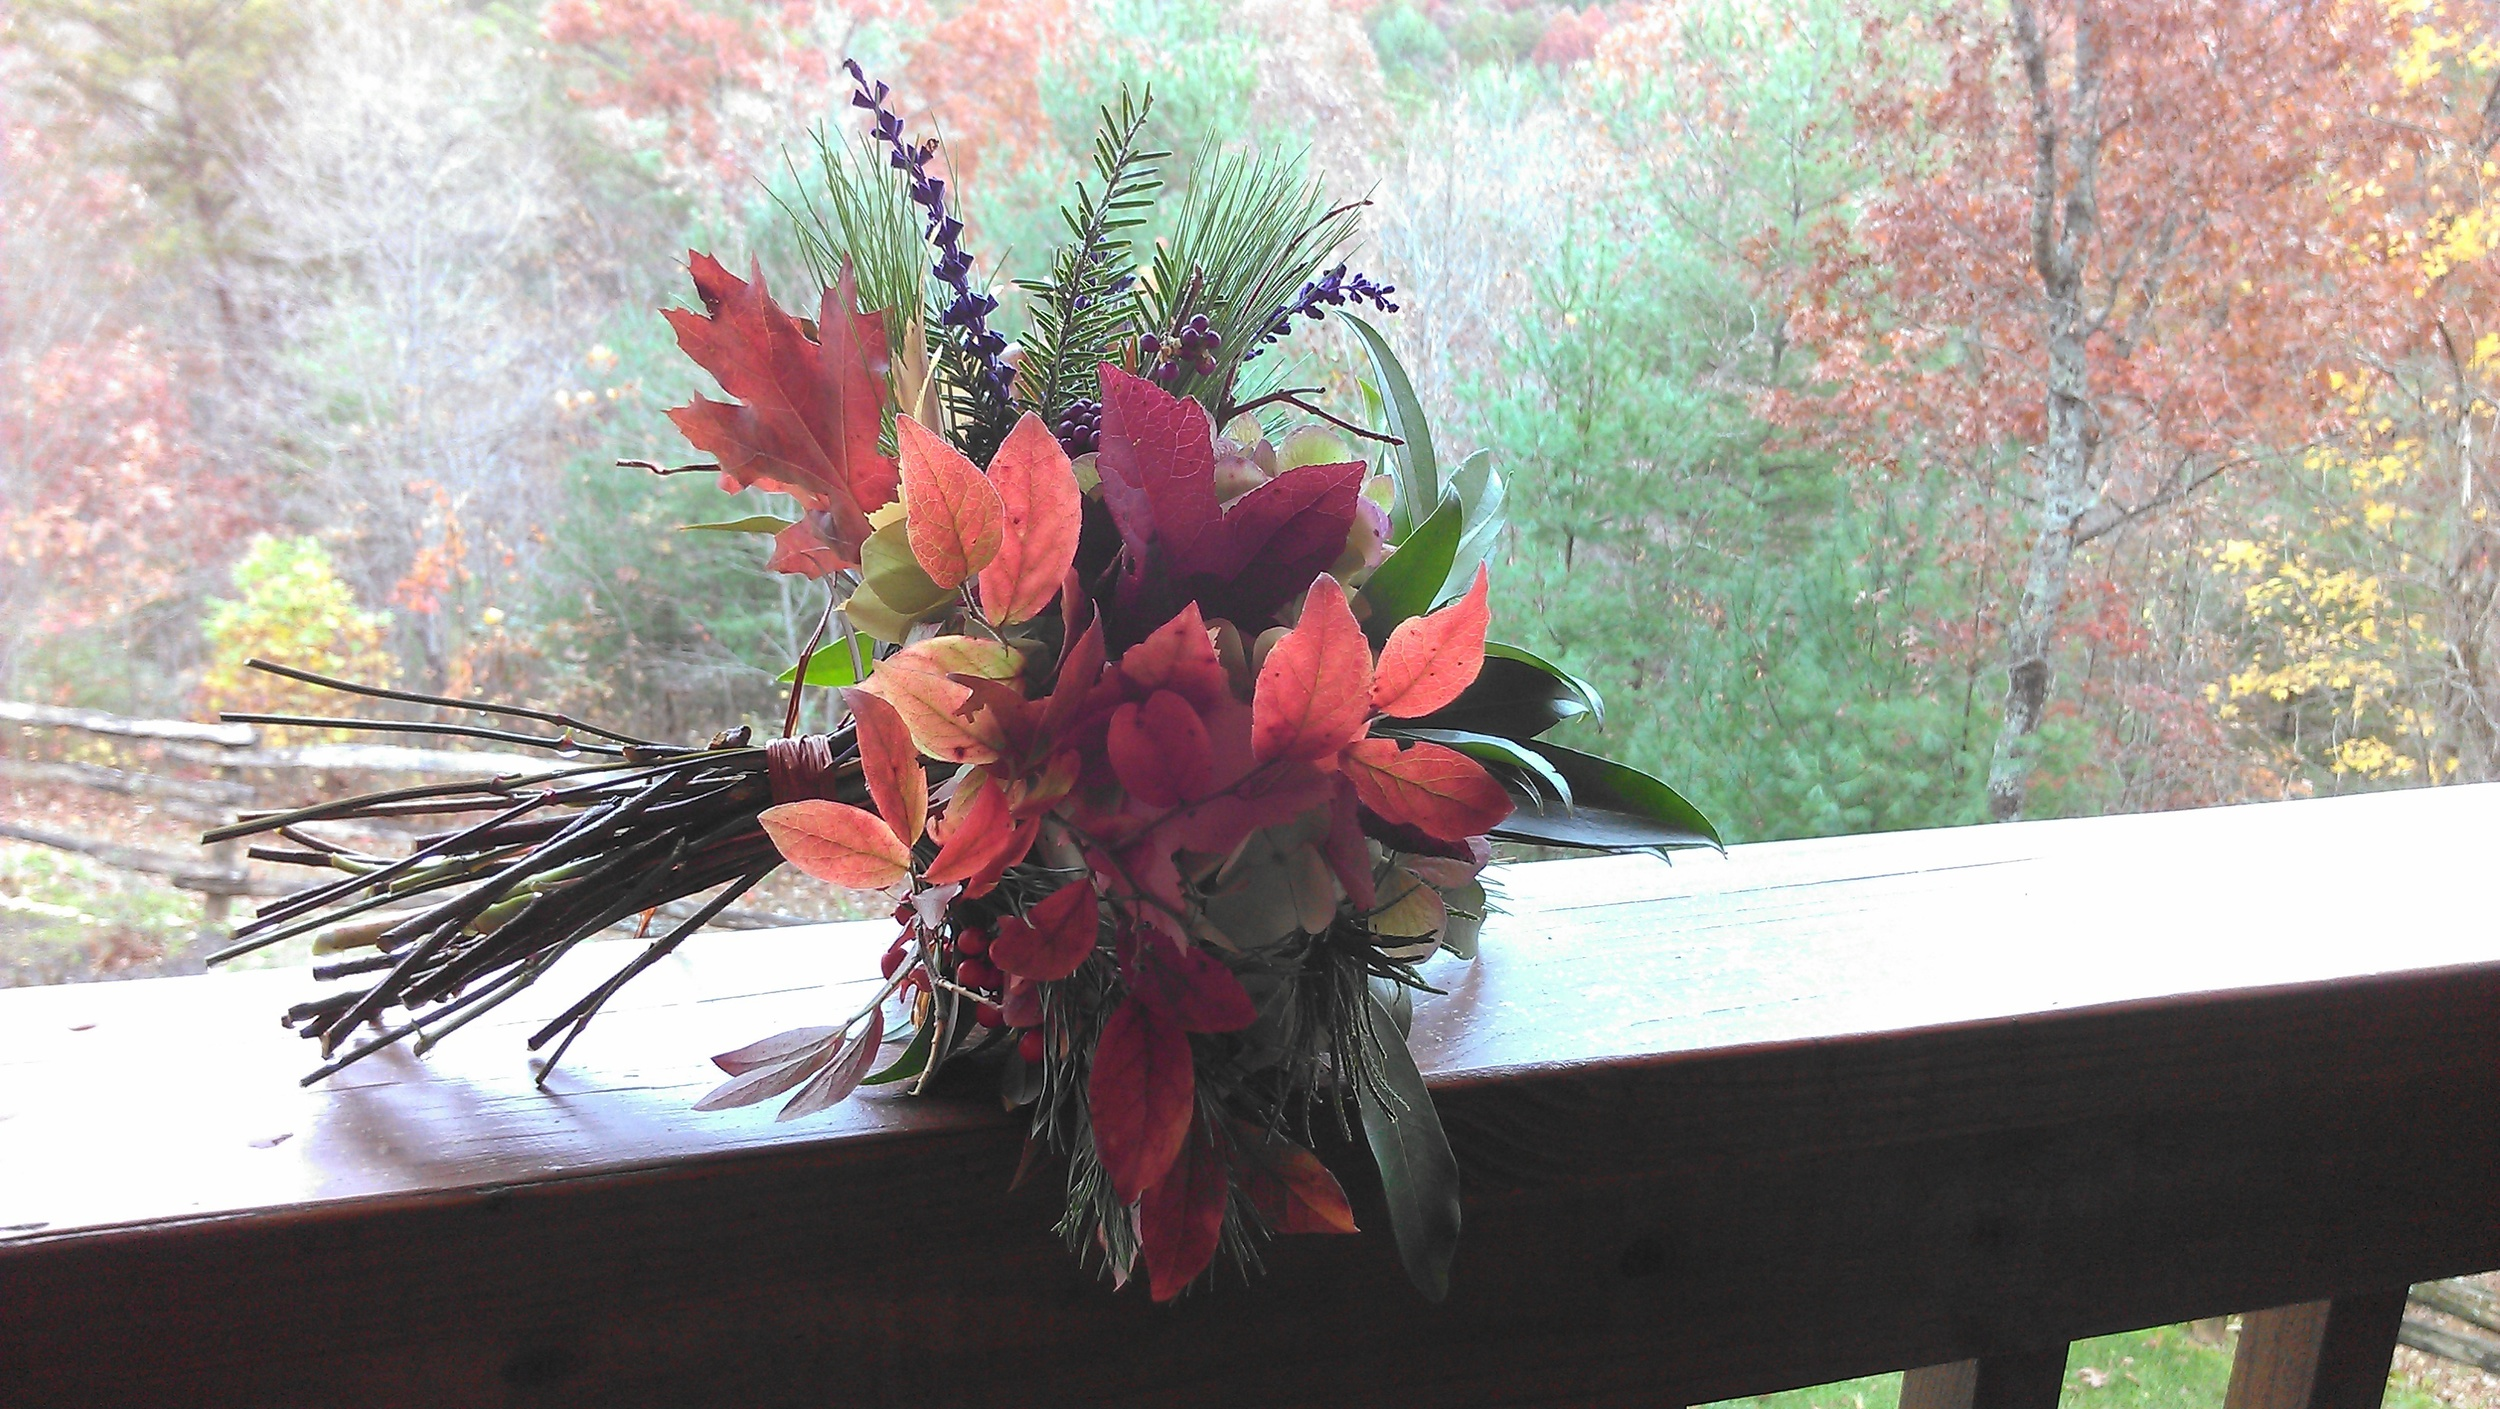 I went for a walk on my in-law's property in Tellico Plains a couple of hours before the ceremony and gathered what natural beauty I could find to create my wedding bouquet.